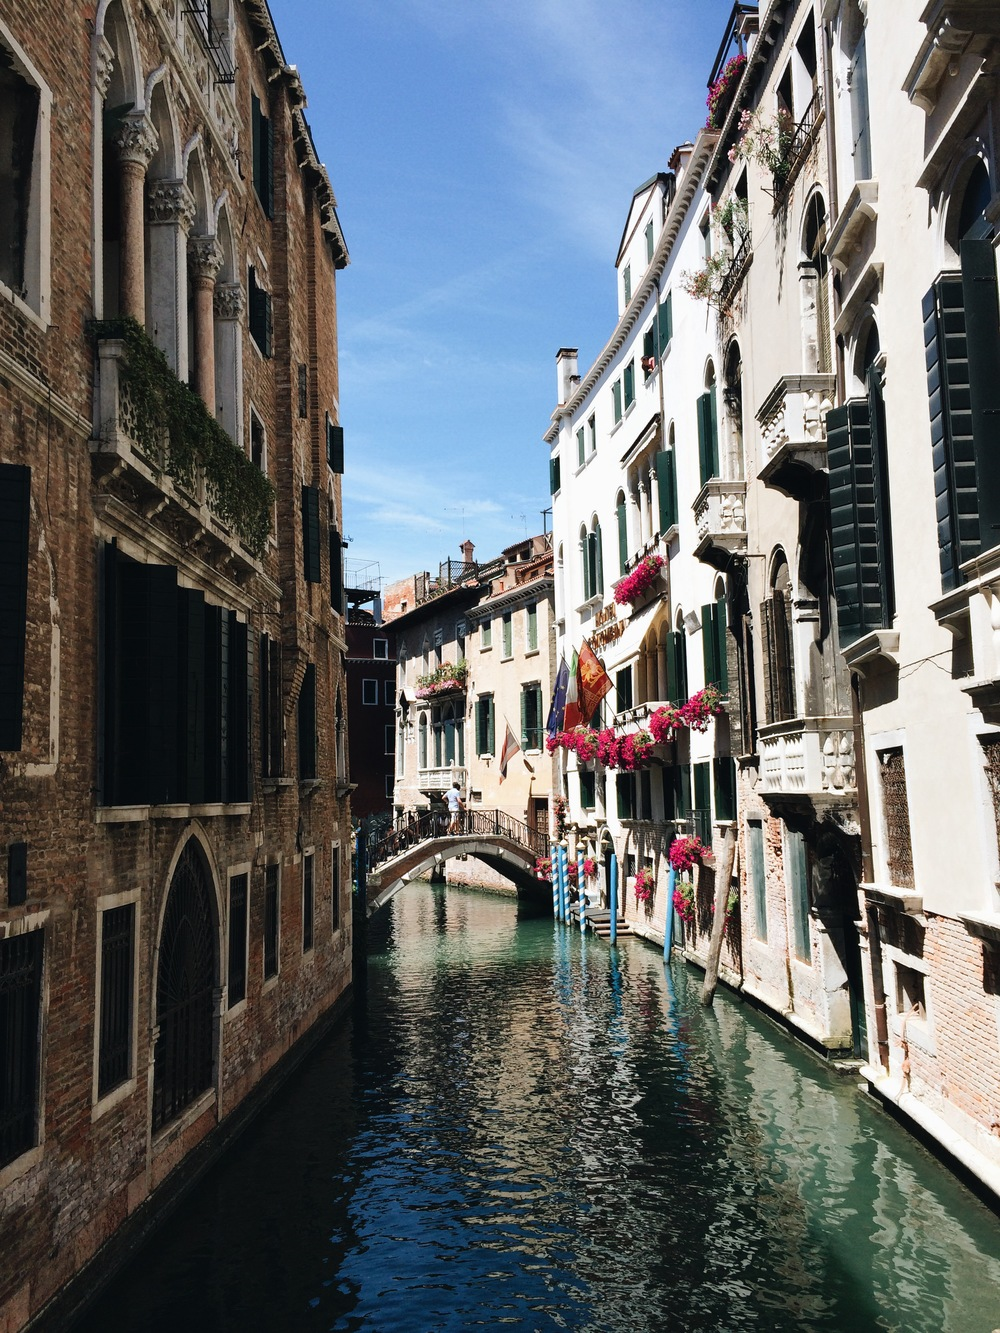 I can cross Venice off my bucket list!